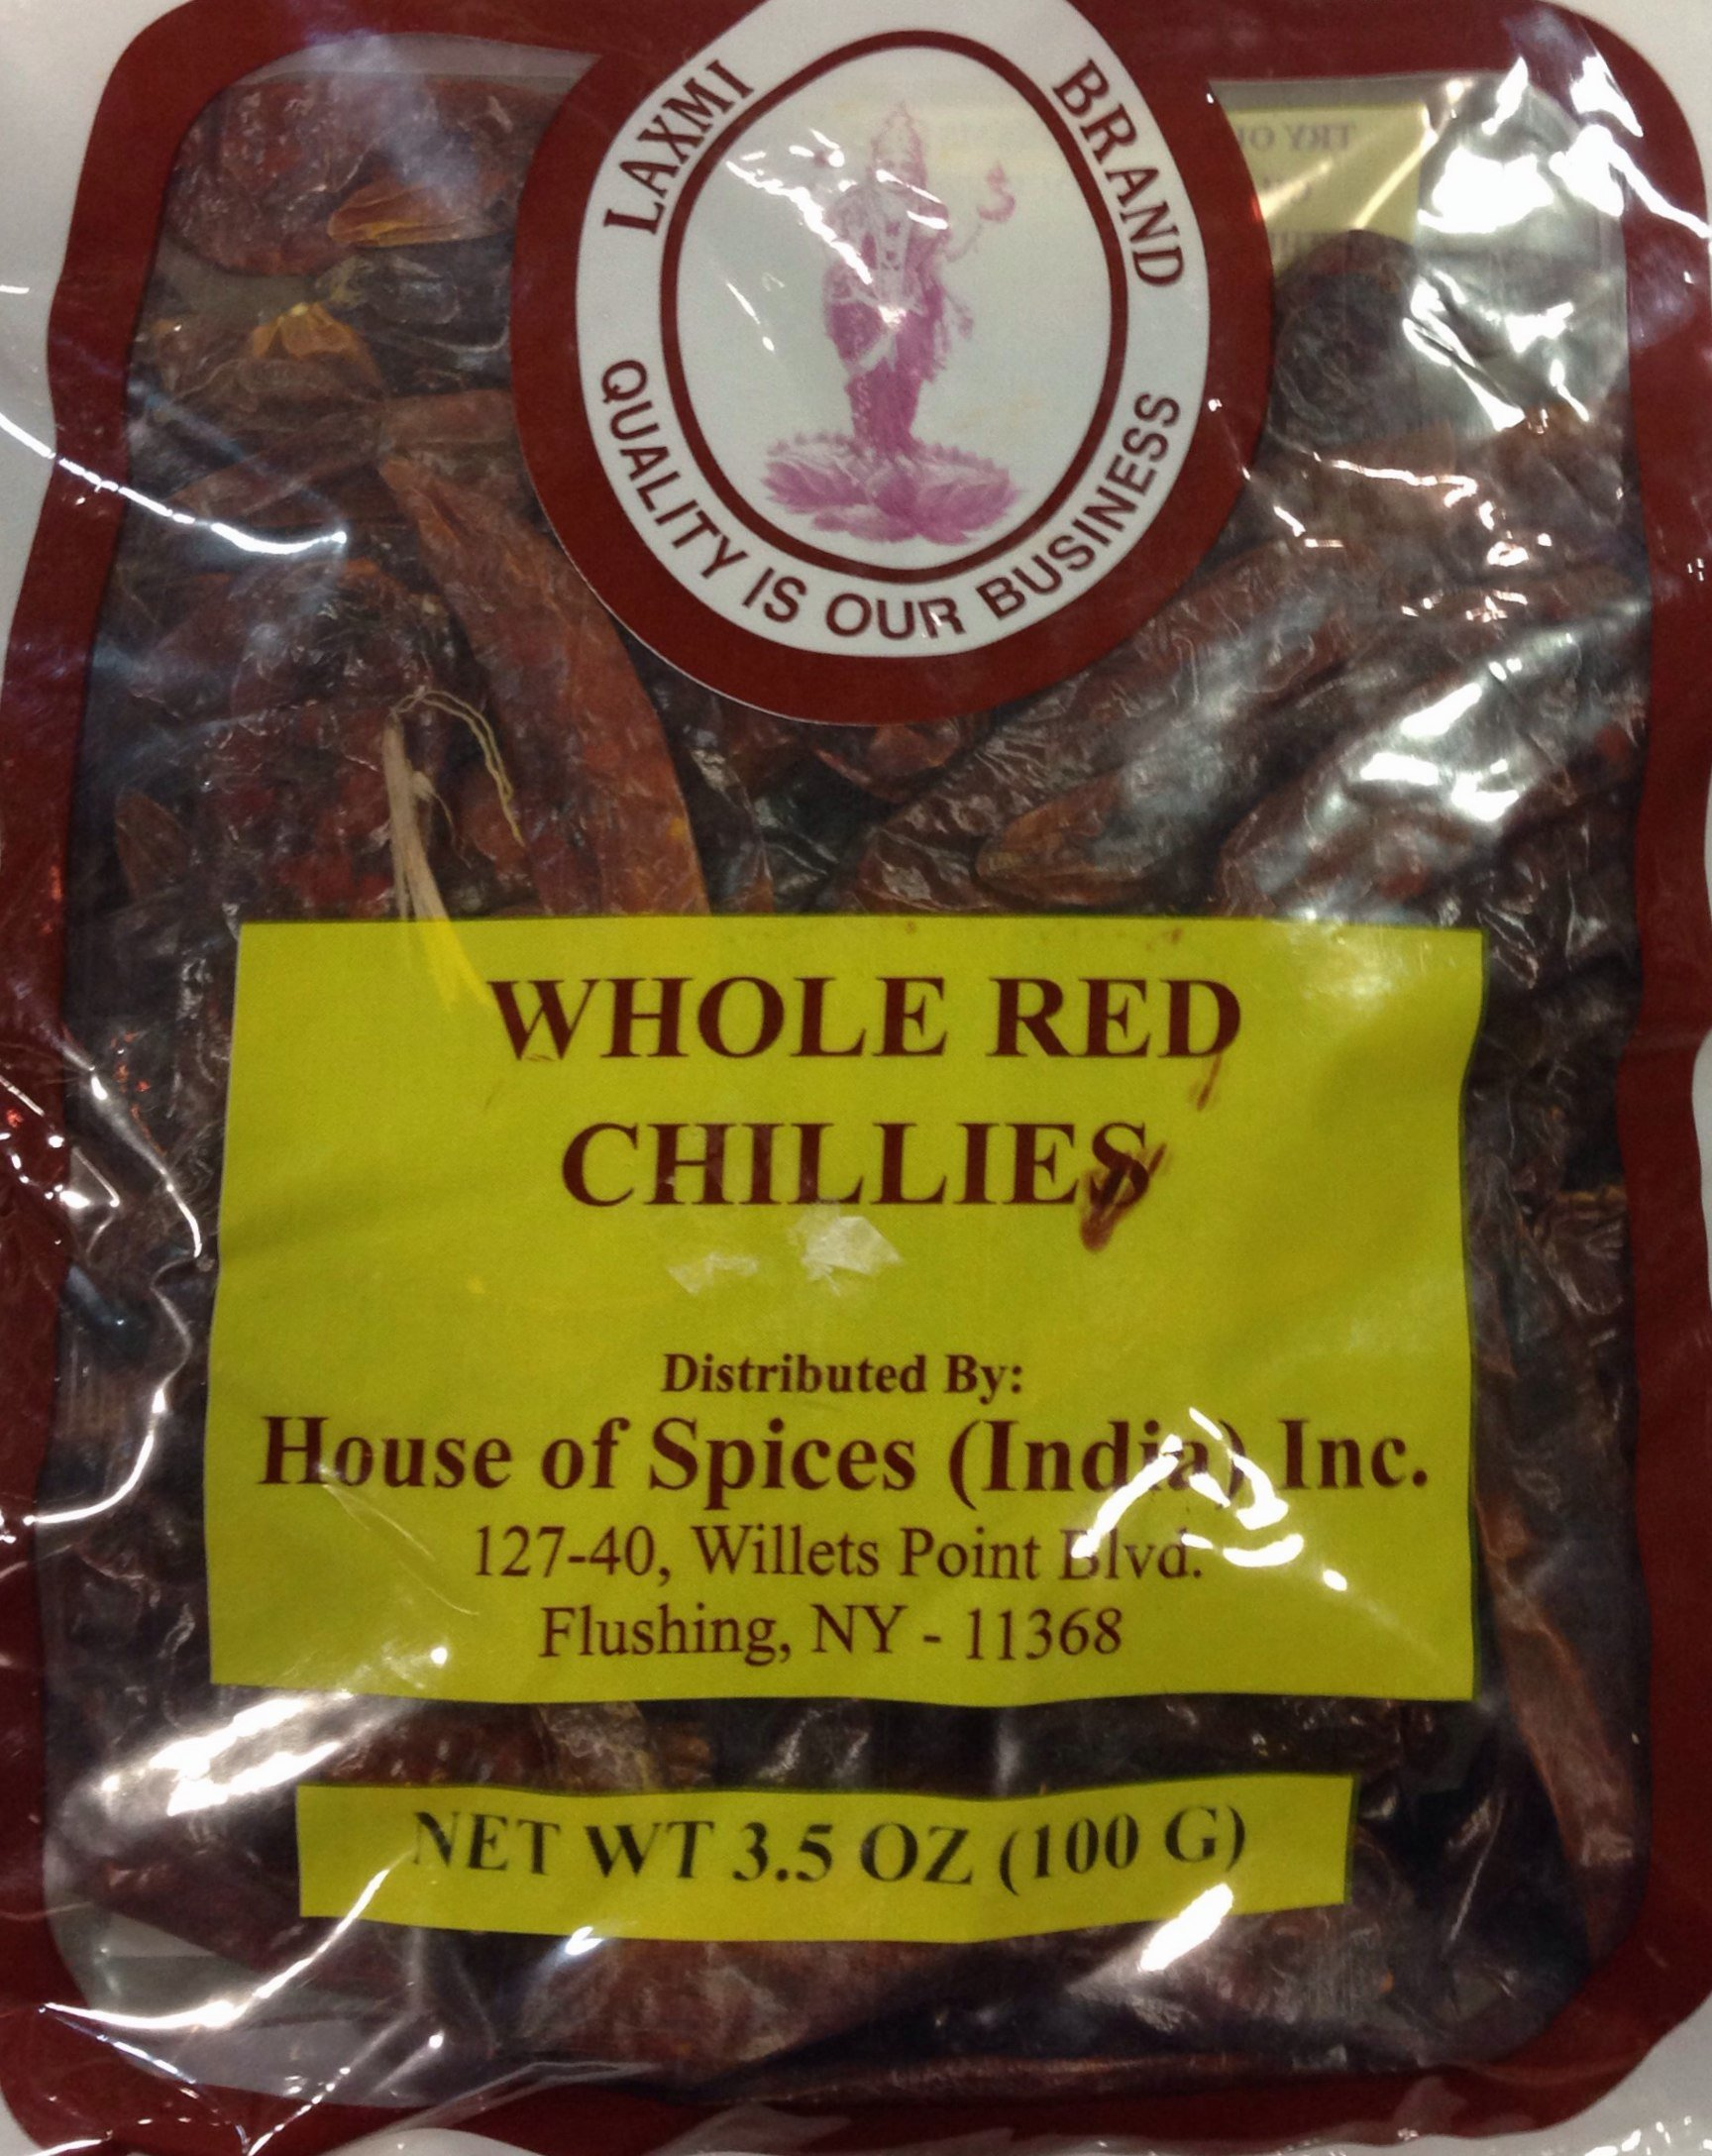 Laxmi Whole Red Chillies for Traditional Indian Cooking - 3.5oz